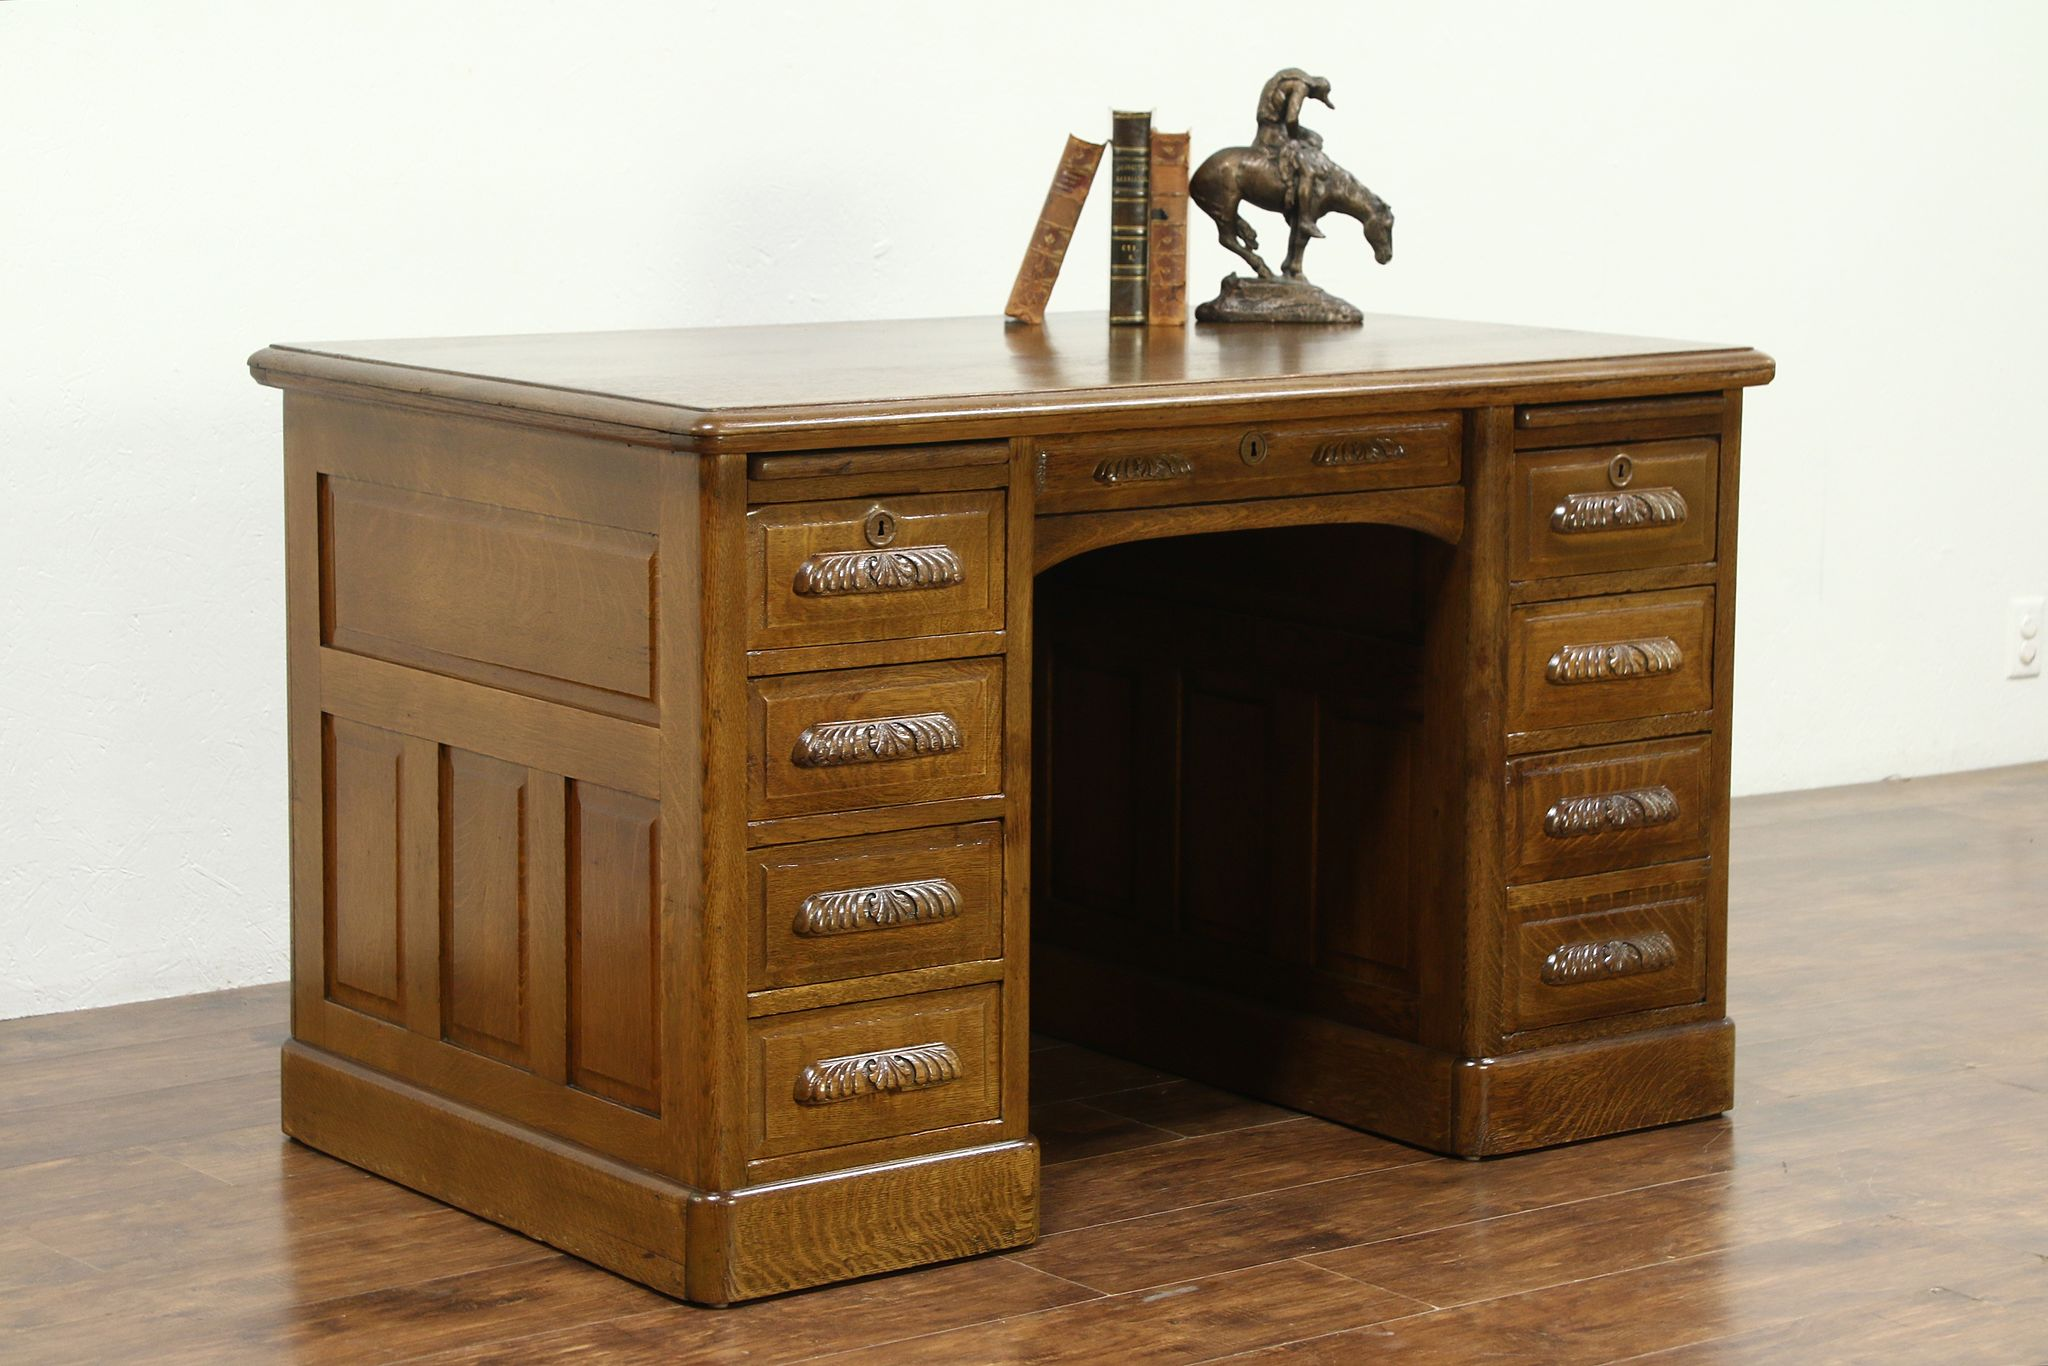 Bon Oak Raised Panel 1900 Antique Library Or Office Desk, Carved Pulls